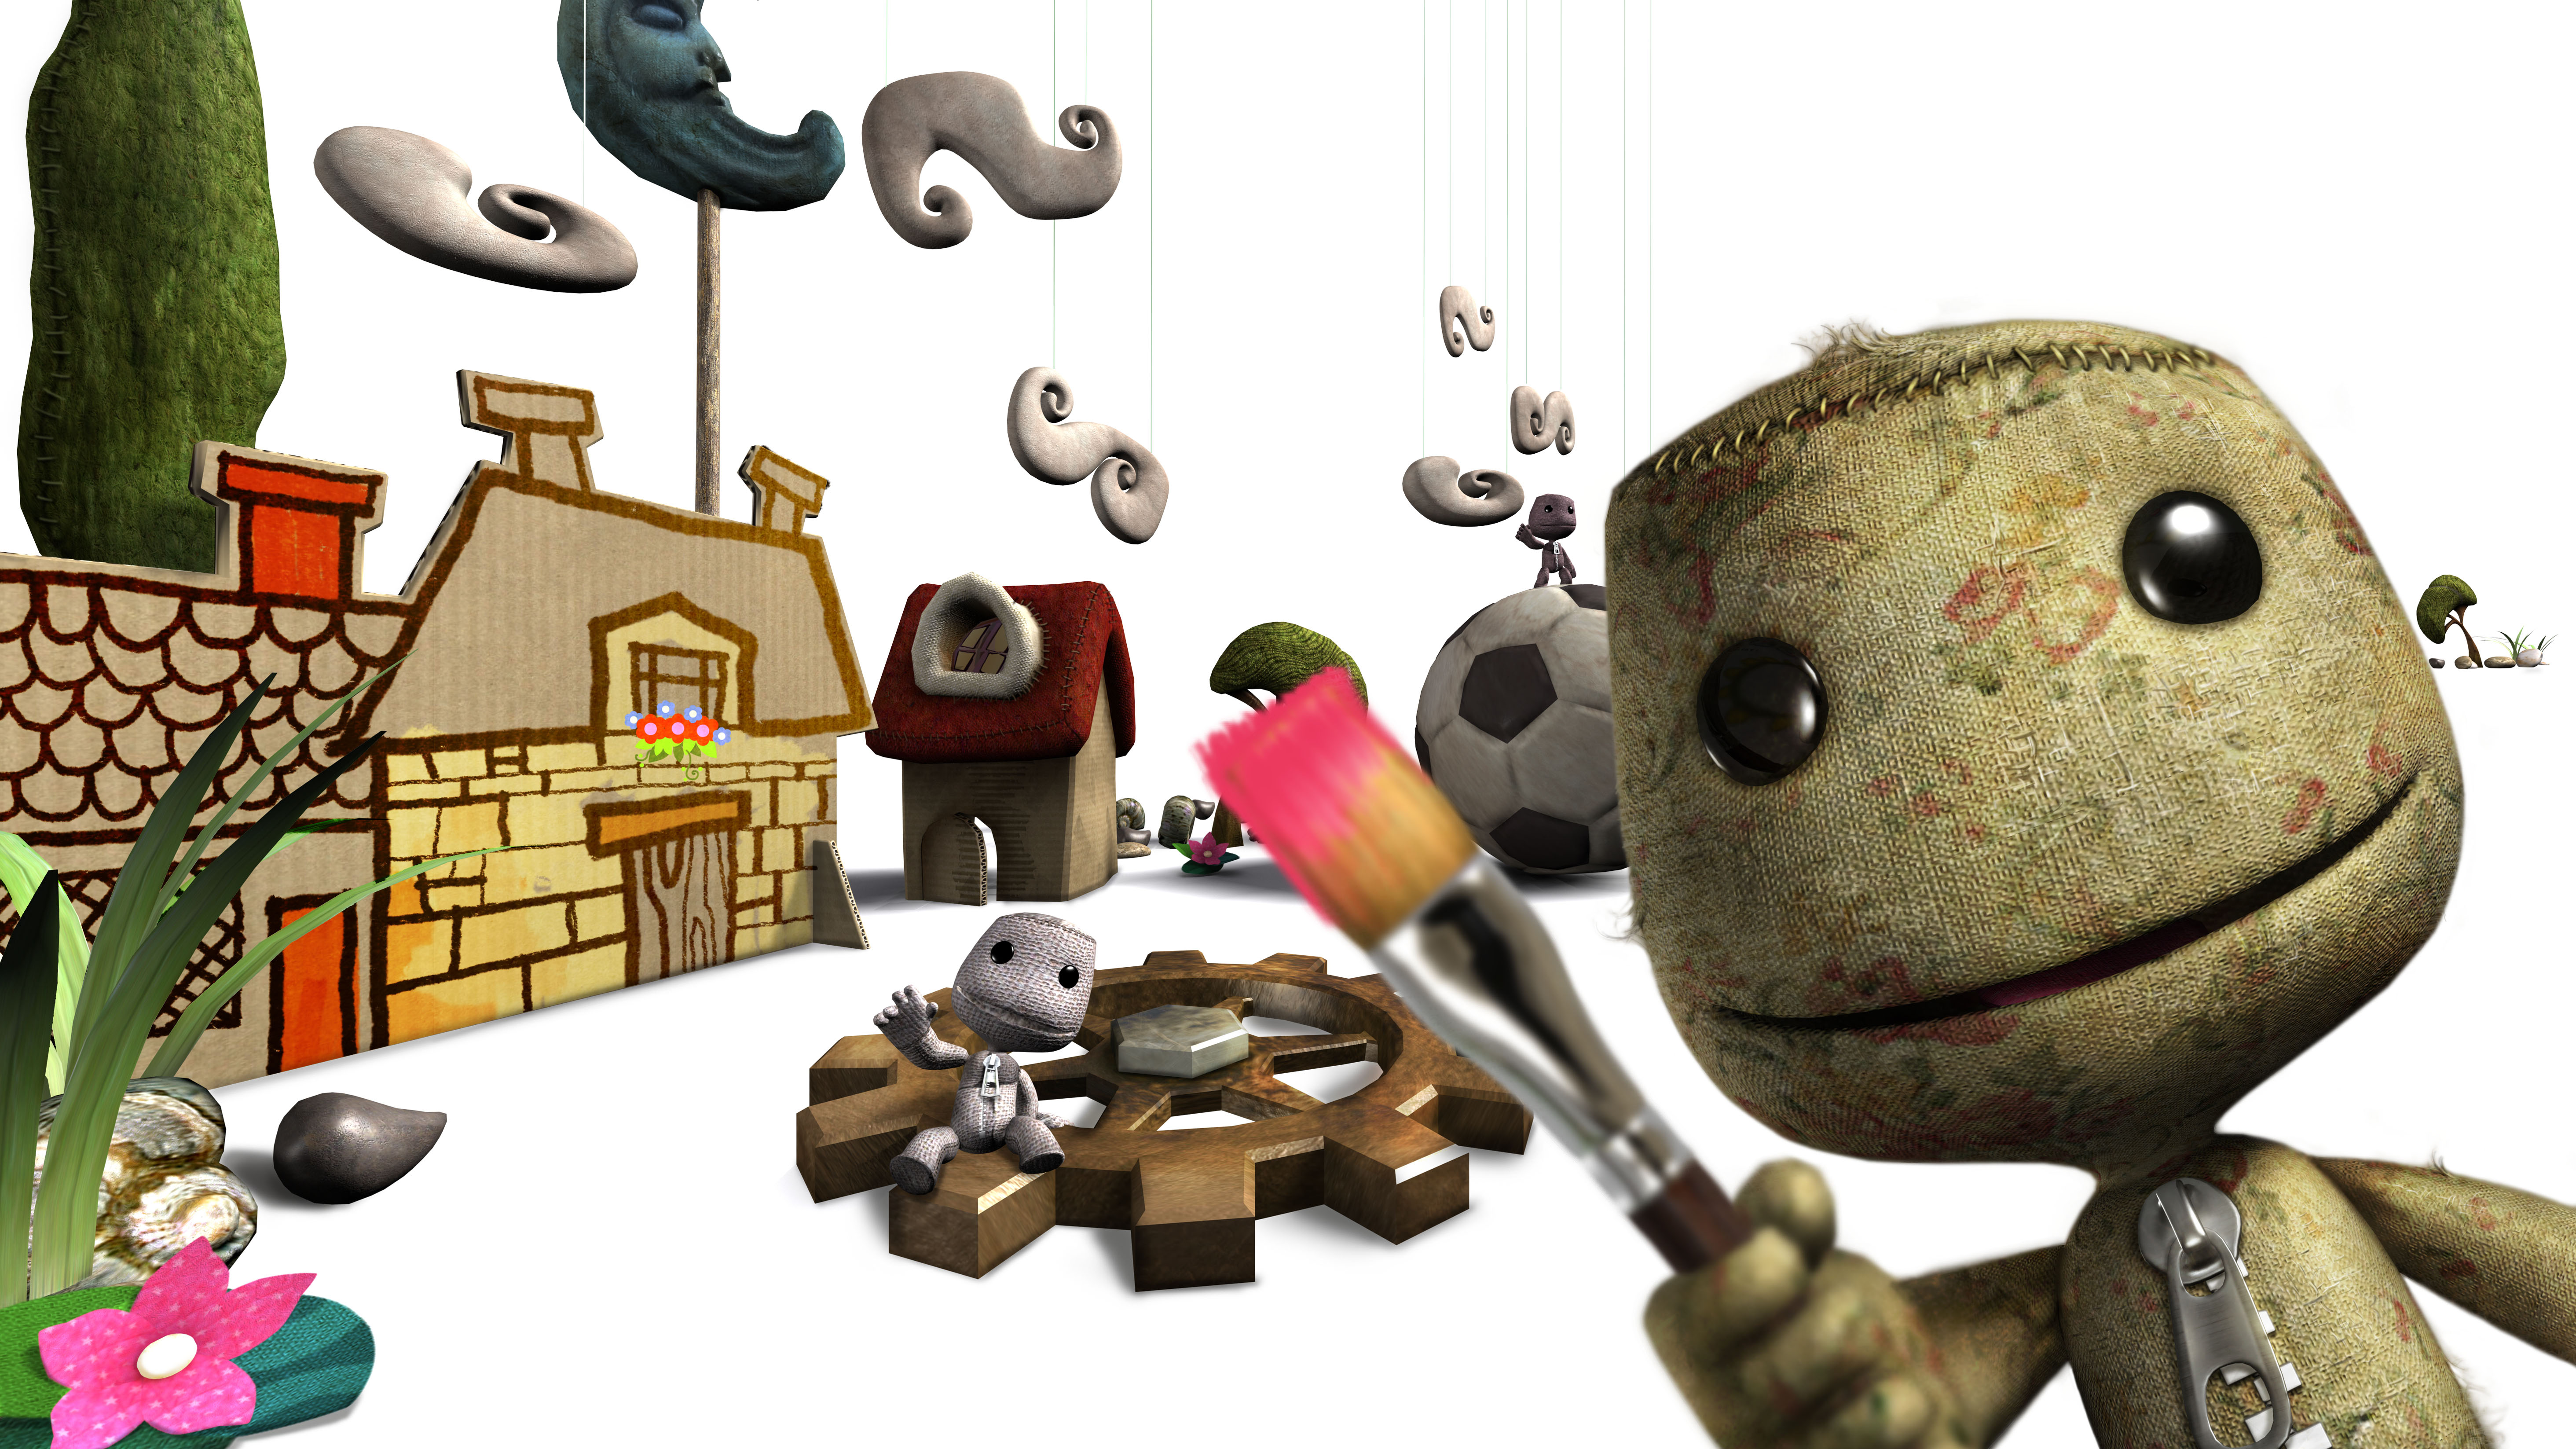 Ltf8kJ6gML8p9556F5UP5M - From LittleBigPlanet to Dreams: Media Molecule and the future of DIY gaming